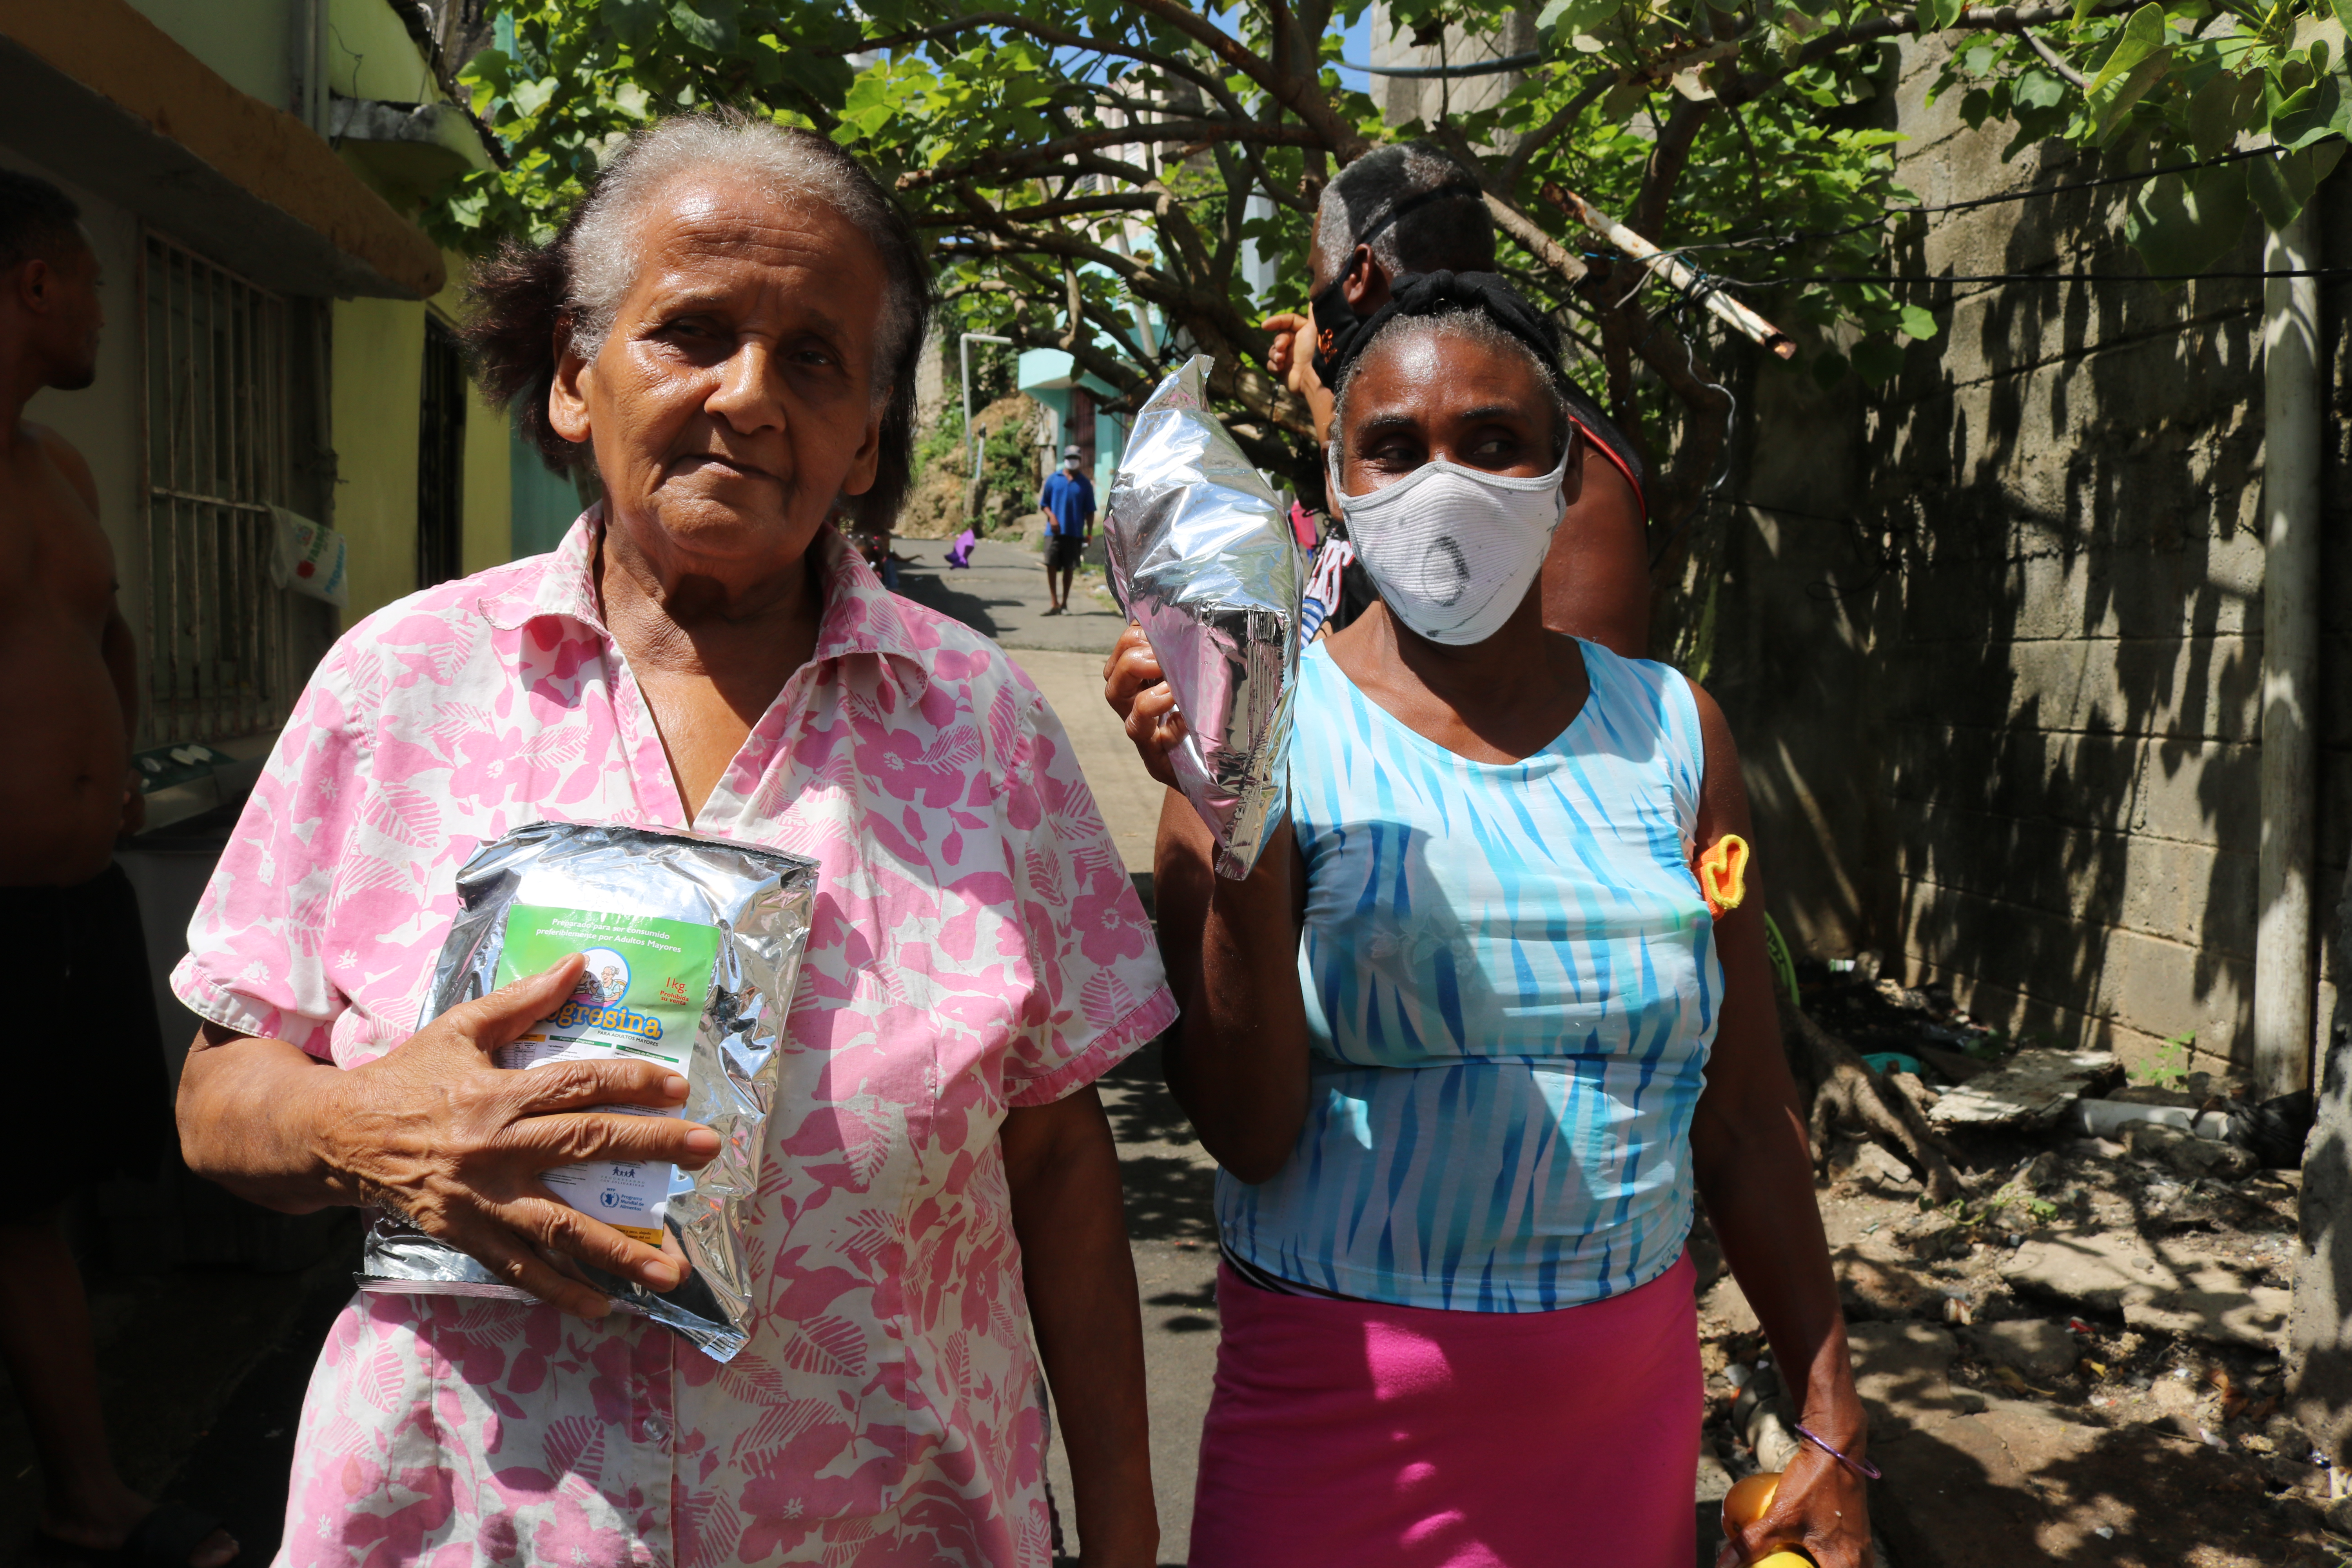 Two women prominently hold the food supplies received from the World Food Programme.